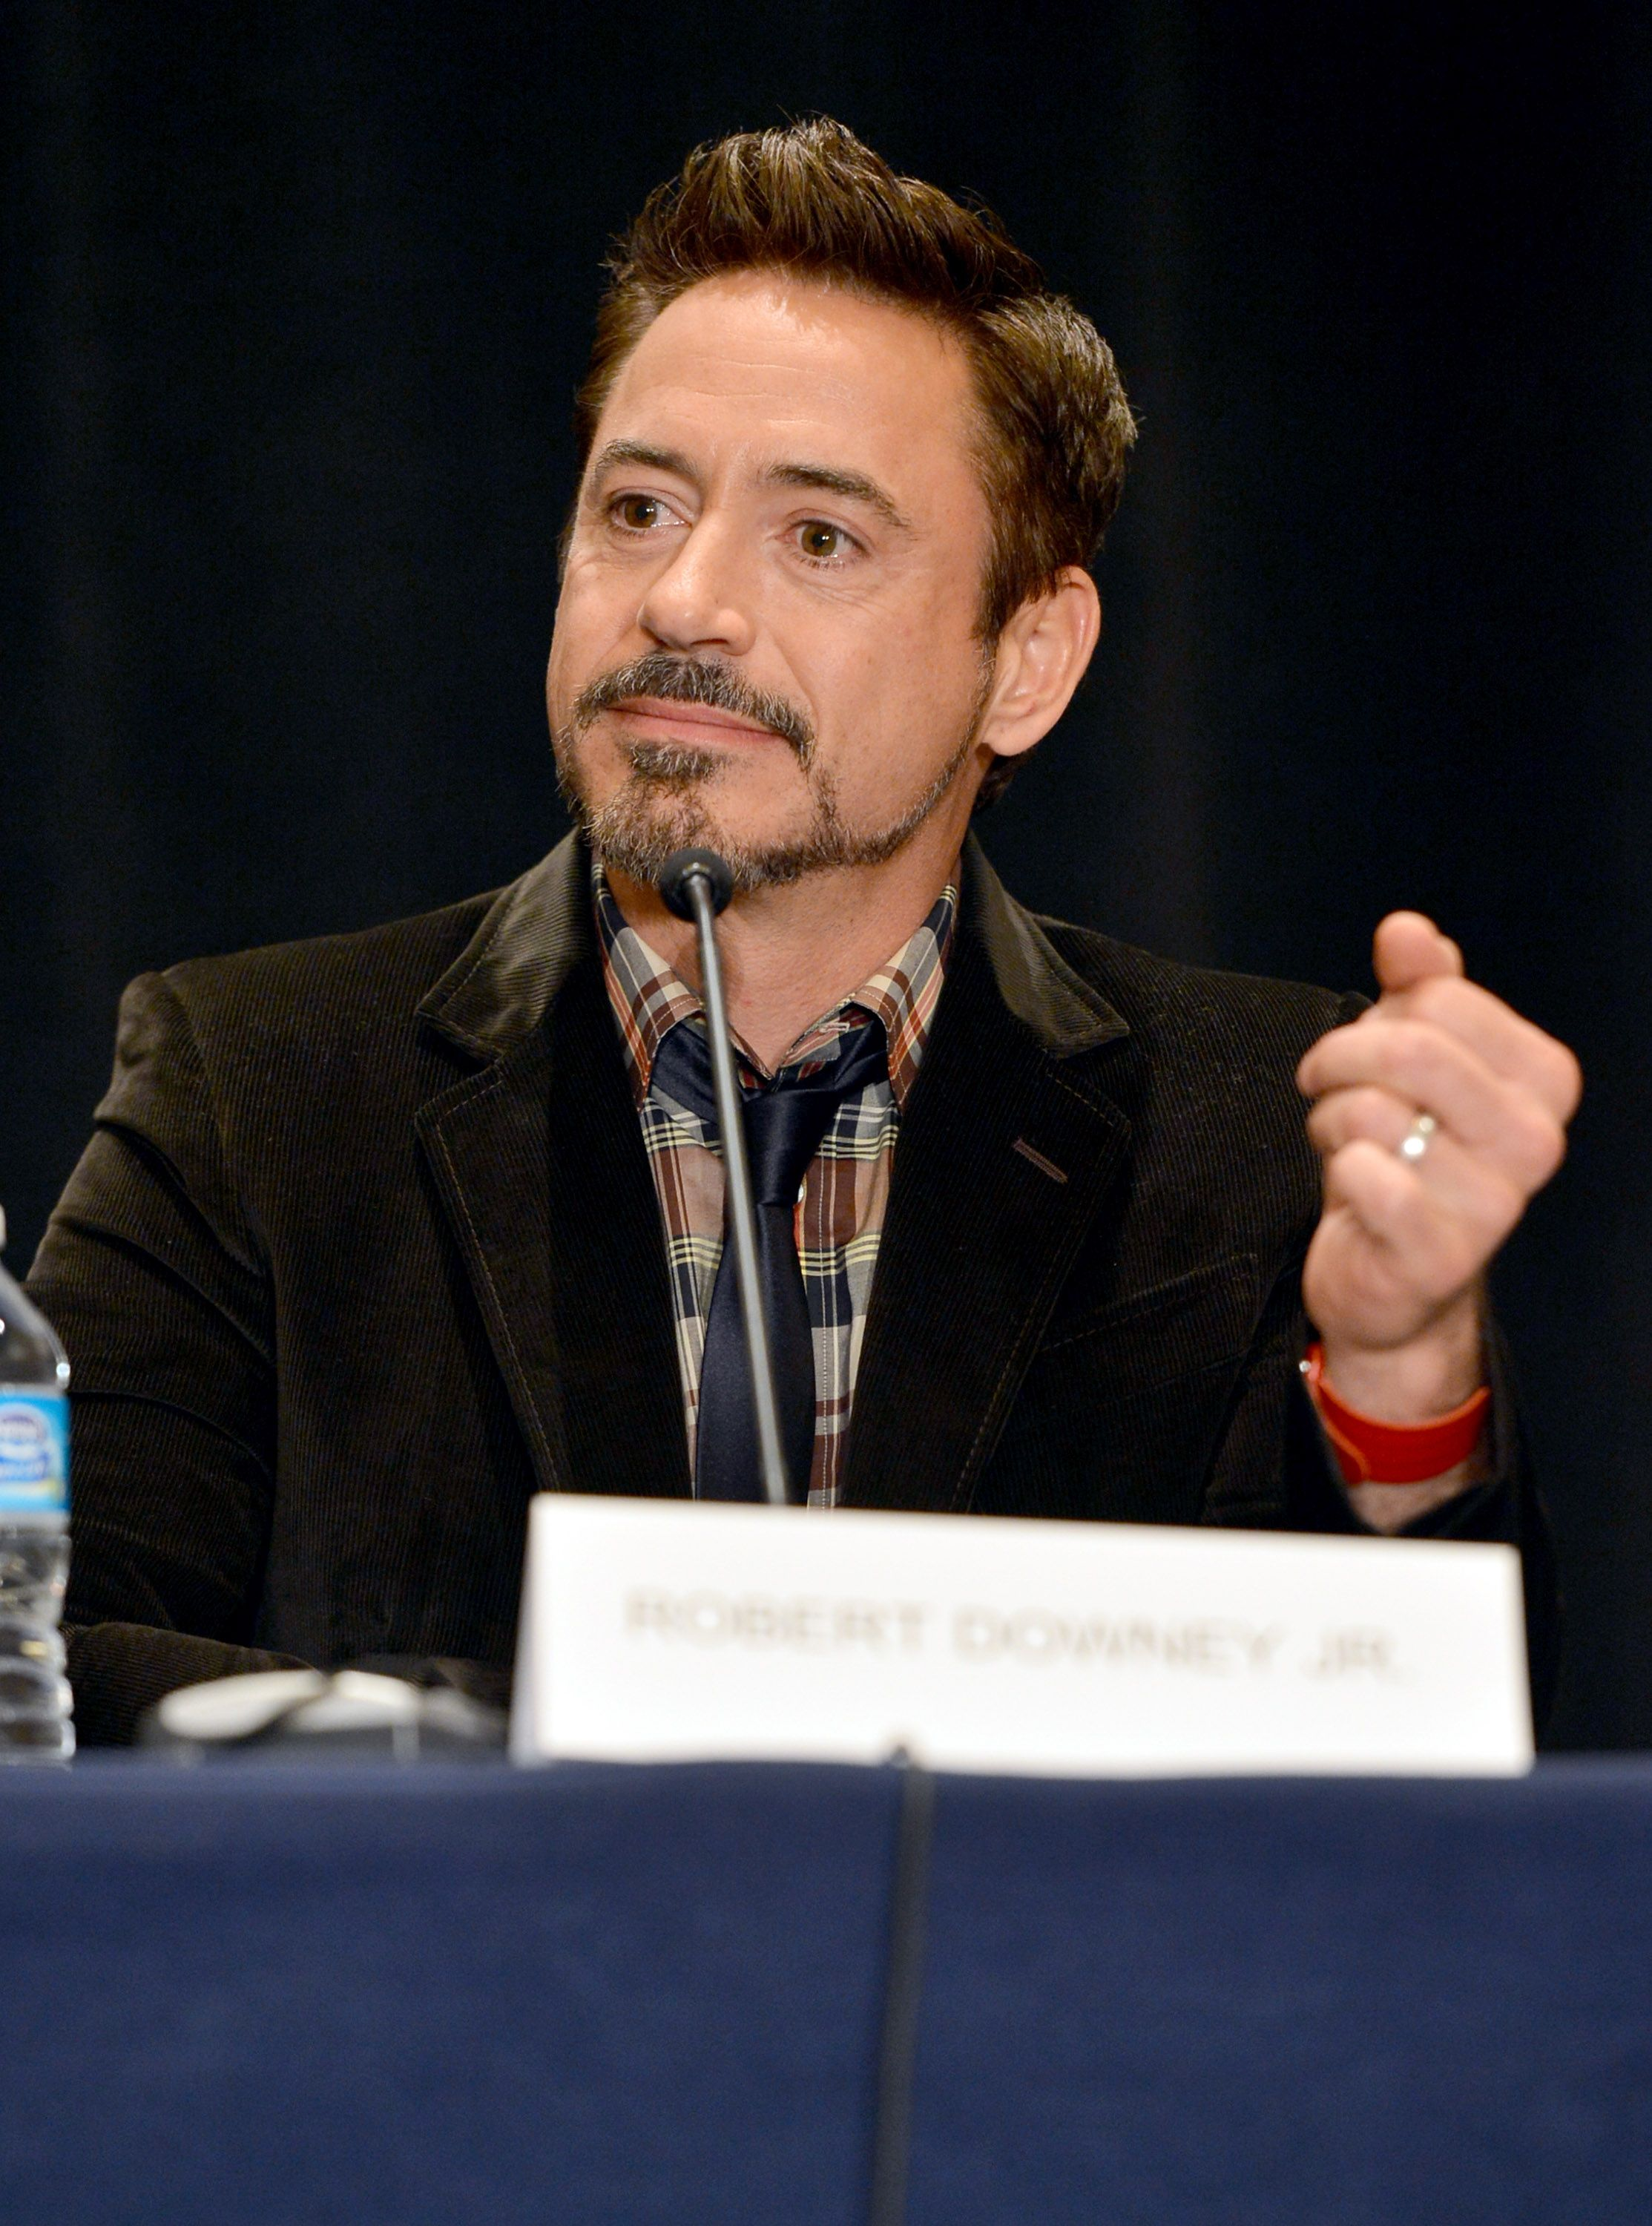 IRON MAN 3 press conference from San Diego Comic Con 2012. IRON MAN 3, in theaters May 3, 2013.